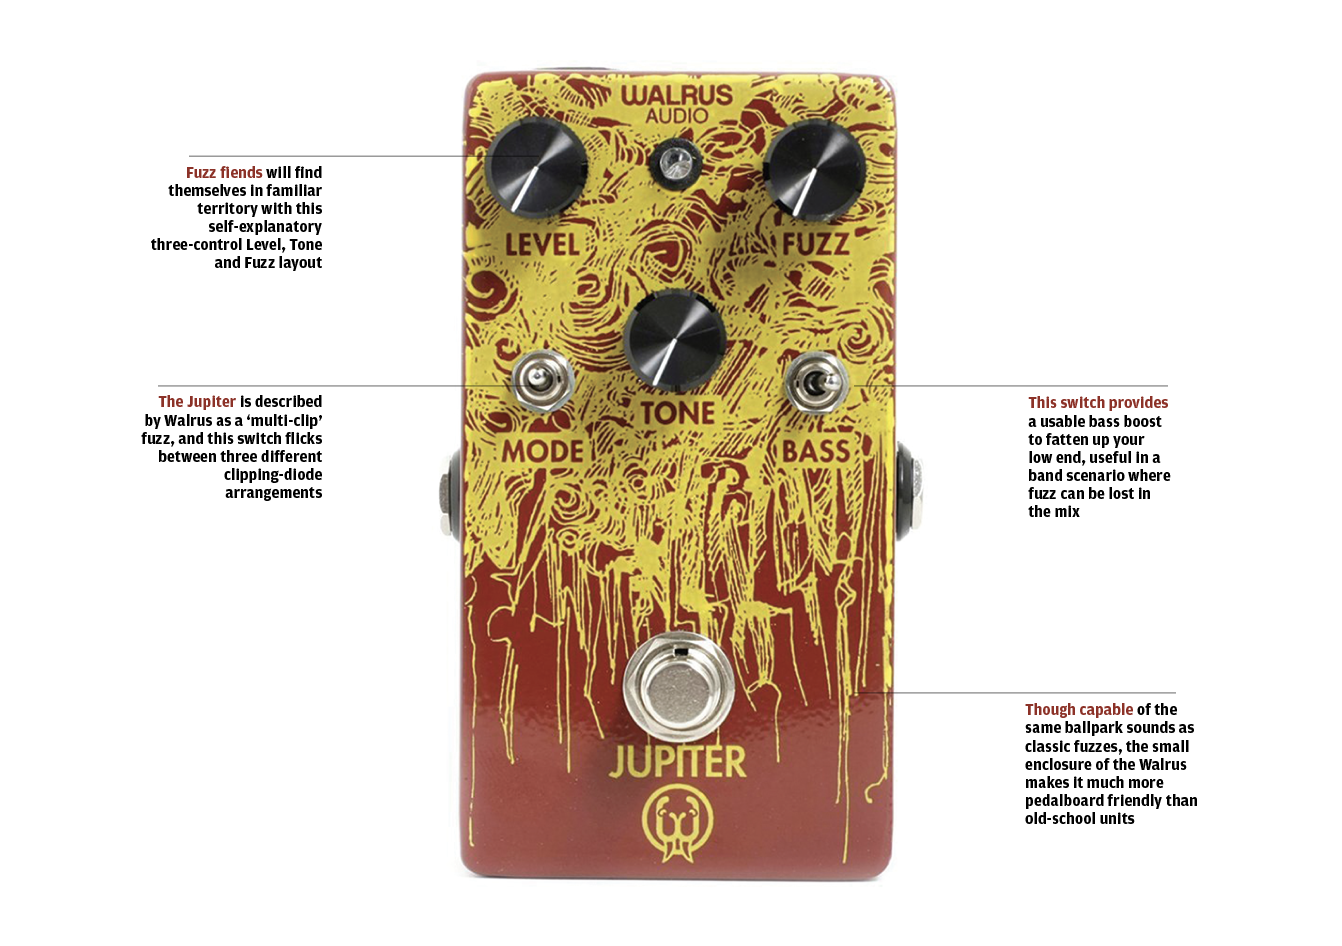 The 20 Best Fx Pedals In World Today All Things Help Wiring An Led Toggle Switch Retro Rides Articulate And Supremely Versatile Fuzzbox With A Range Of Switchable Clipping Modes To Provide Rainbow Fuzz Flavours